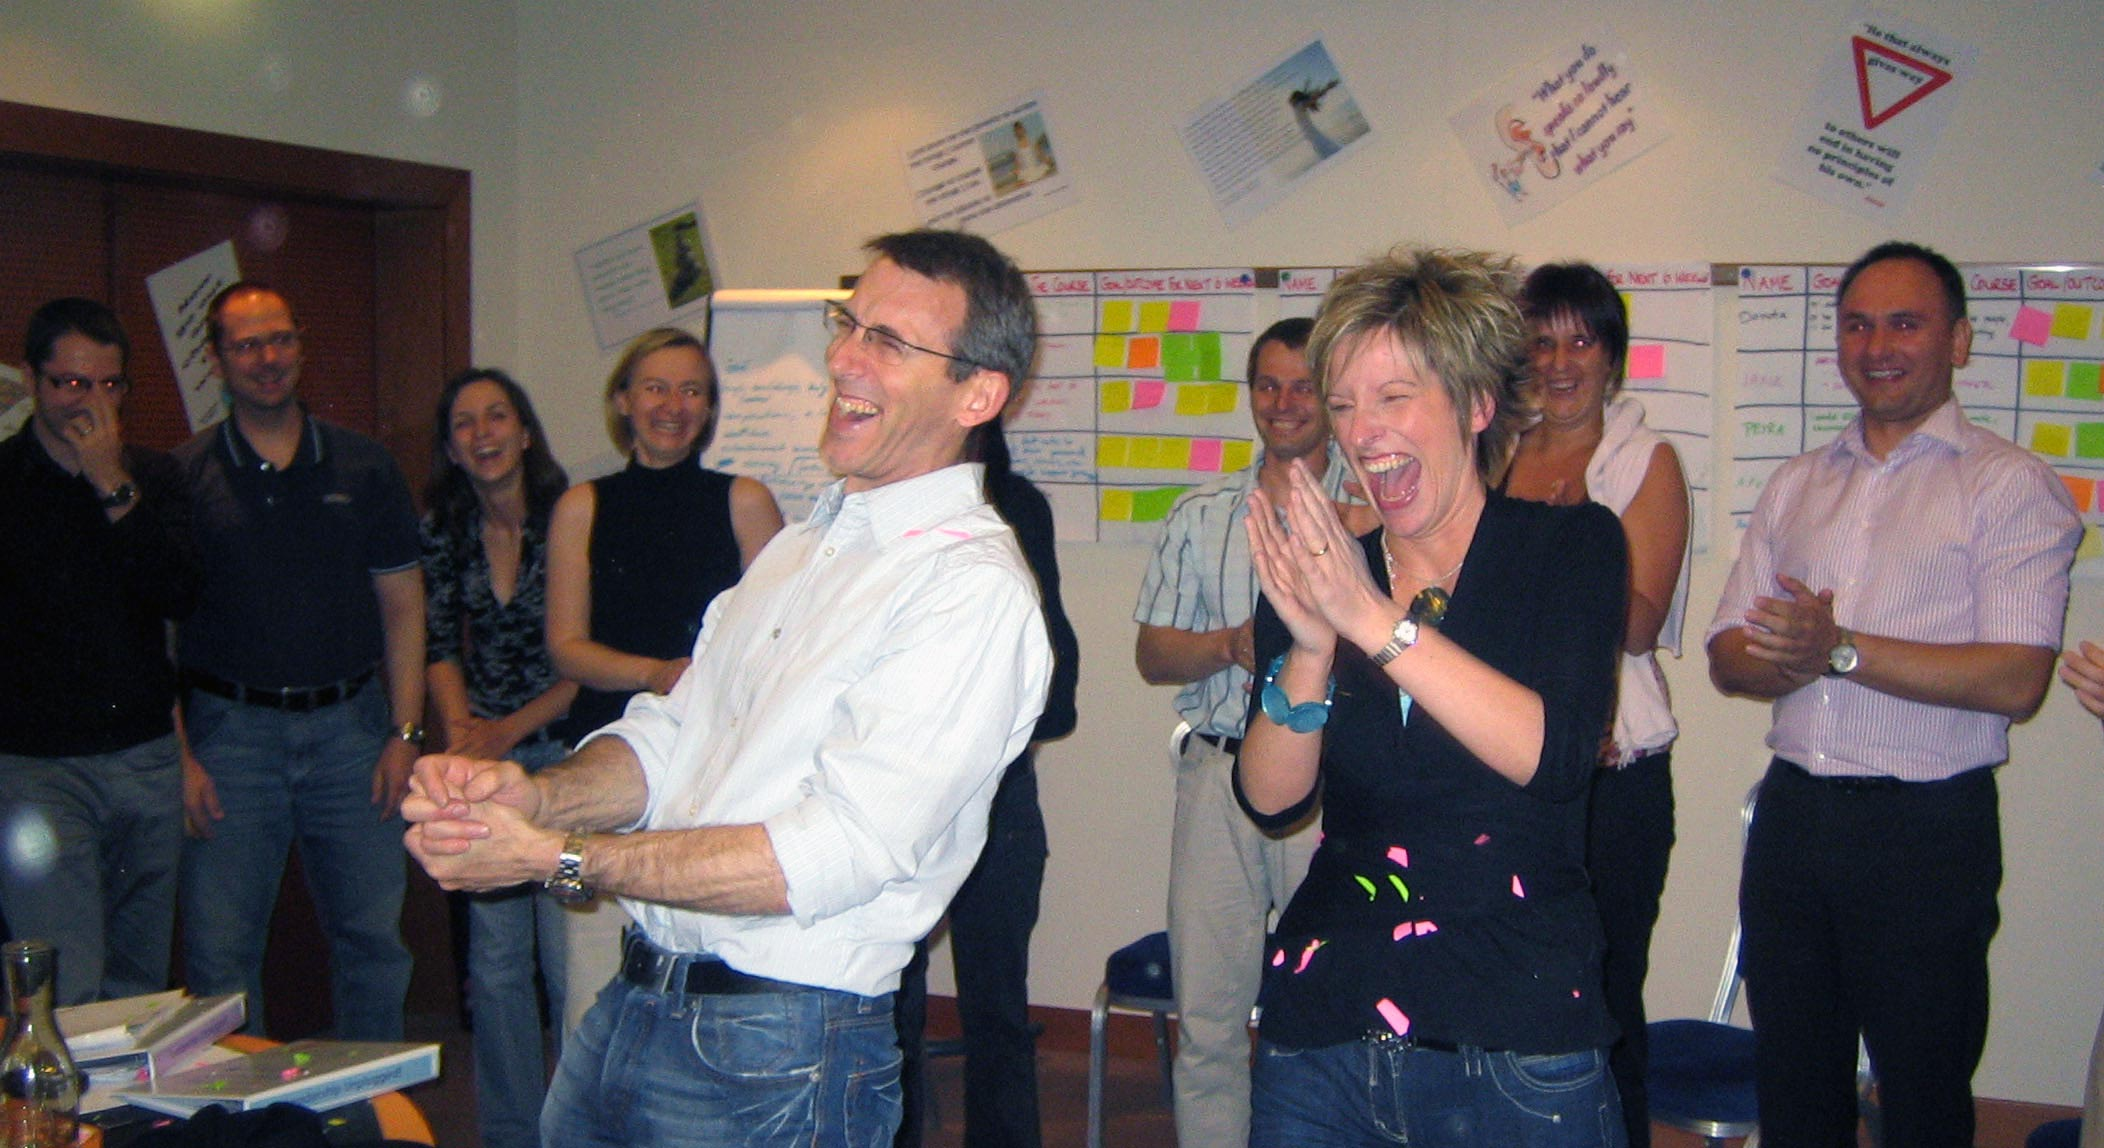 Alastair Olby being showered with homemade confetti by participant on a leadership programme